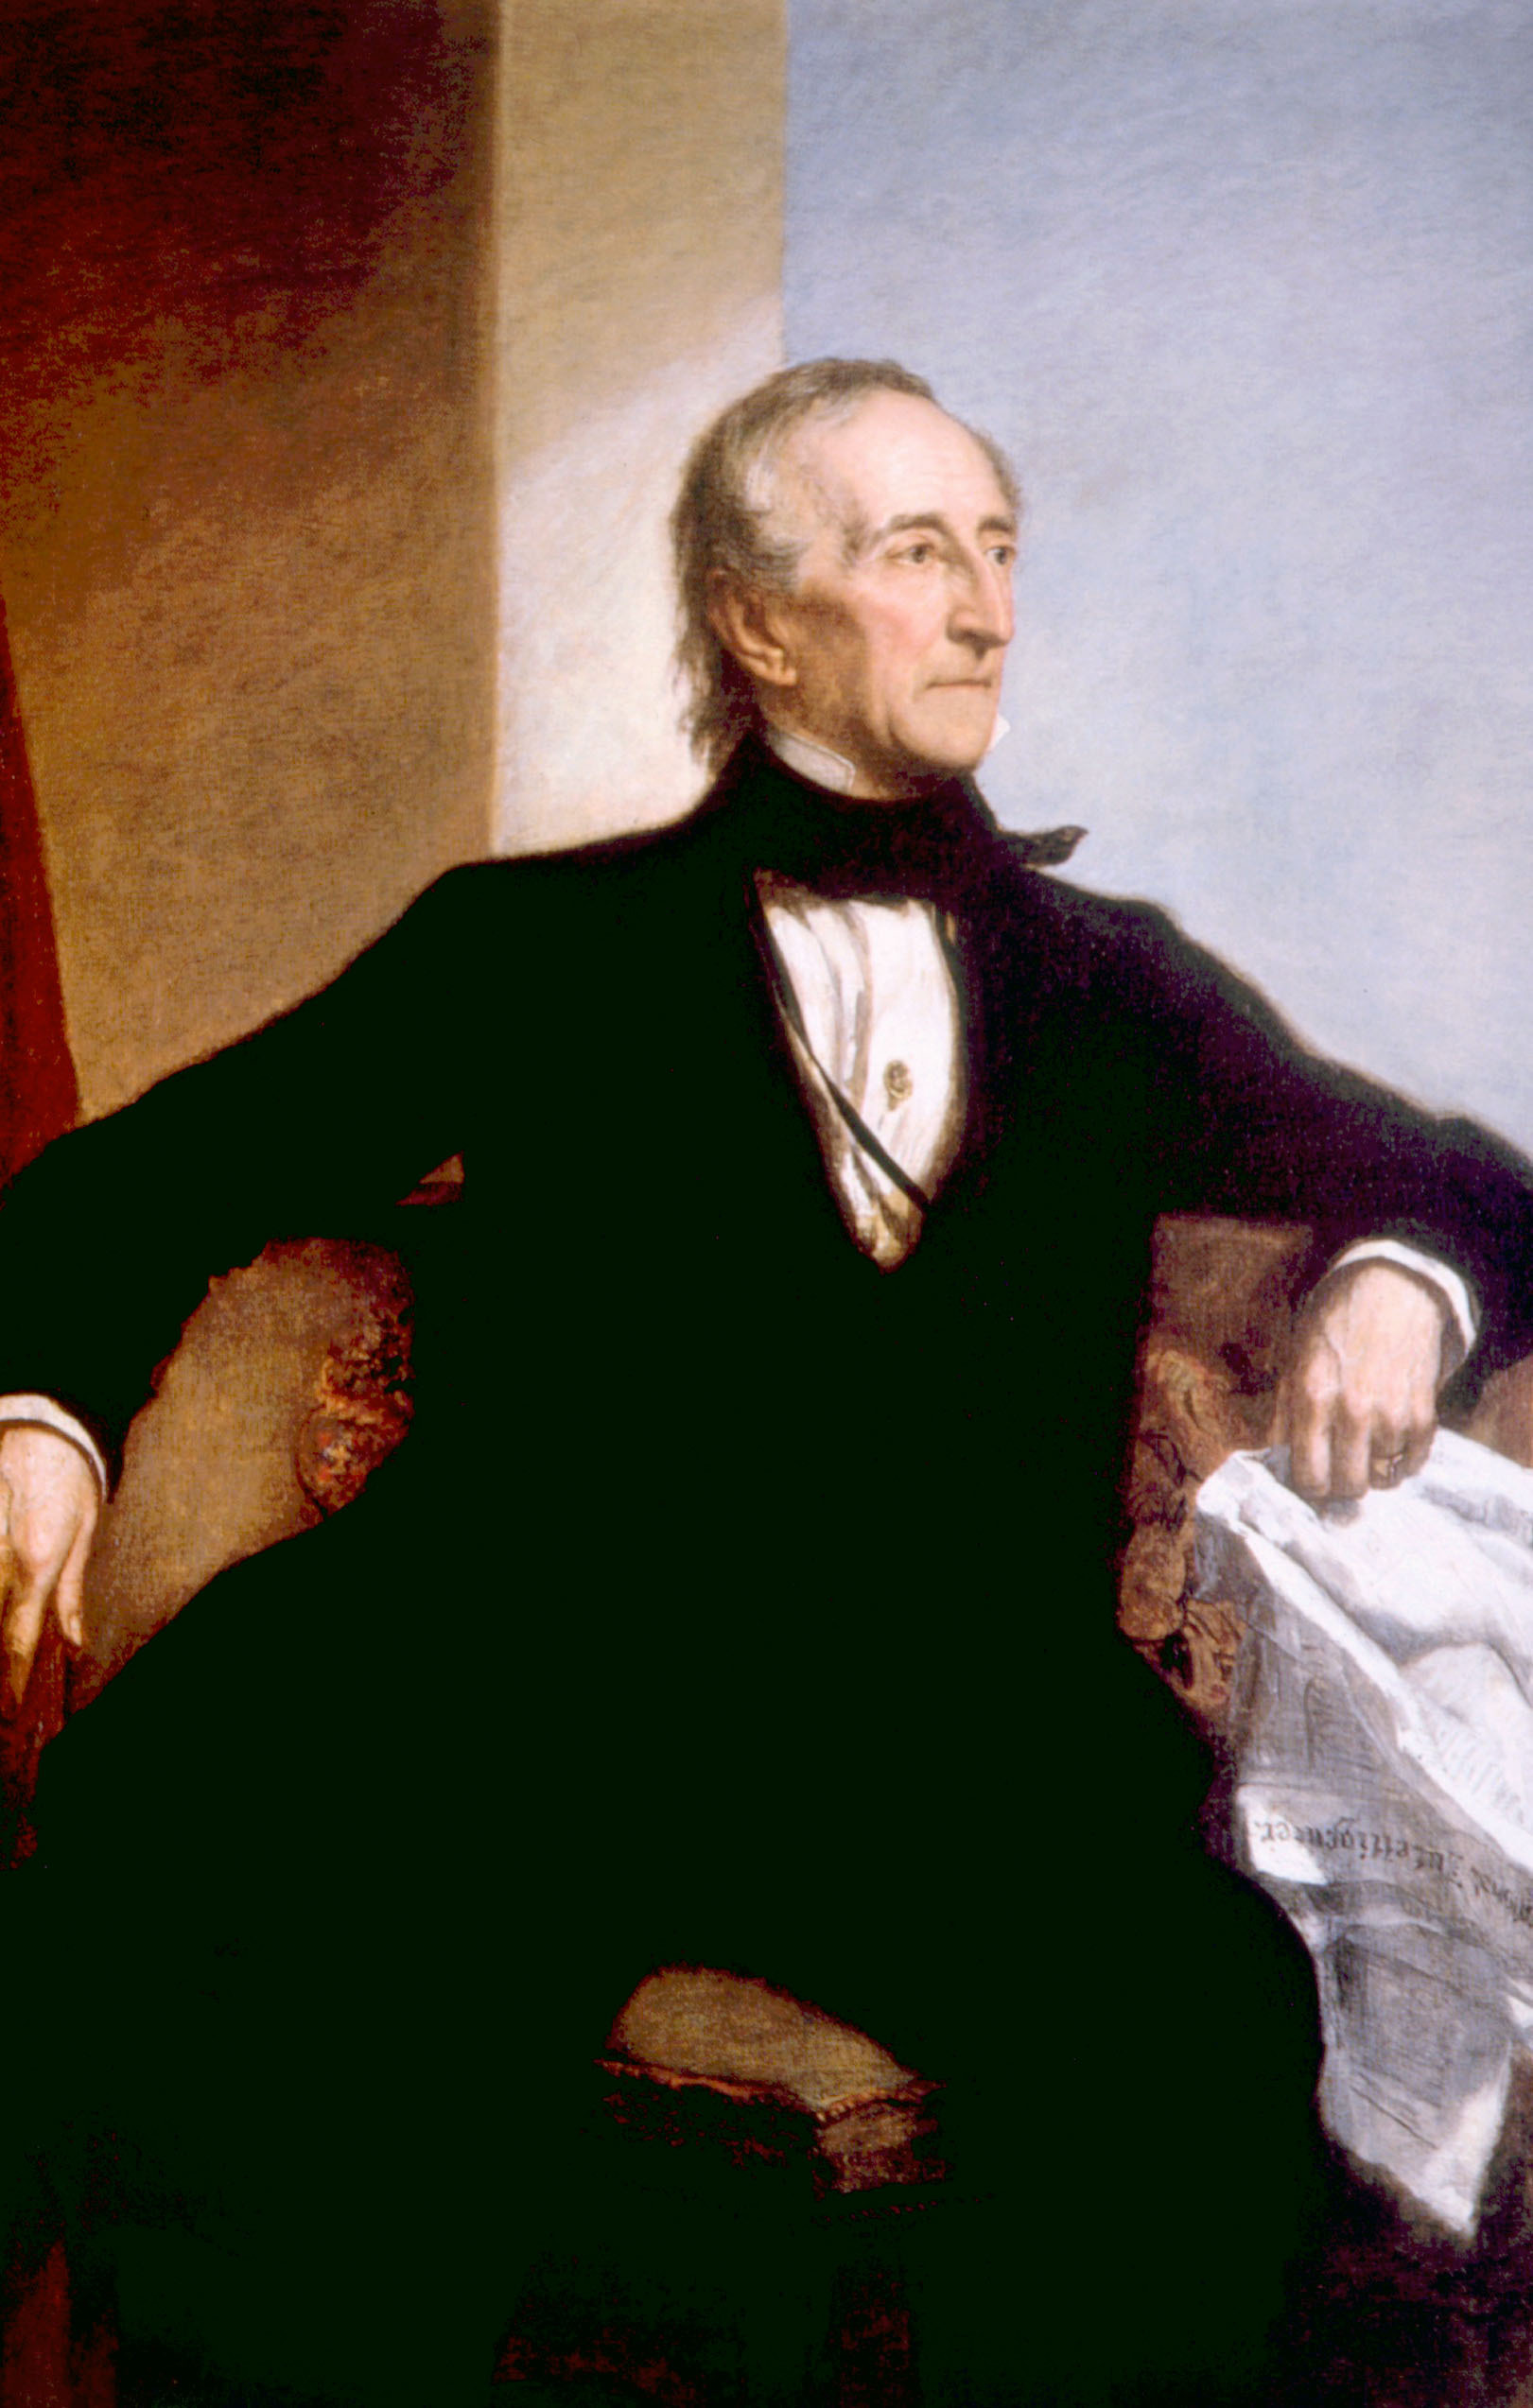 He was the tenth president of the United States from 1841 to 1845 after briefly serving as the tenth vice president in 1841.